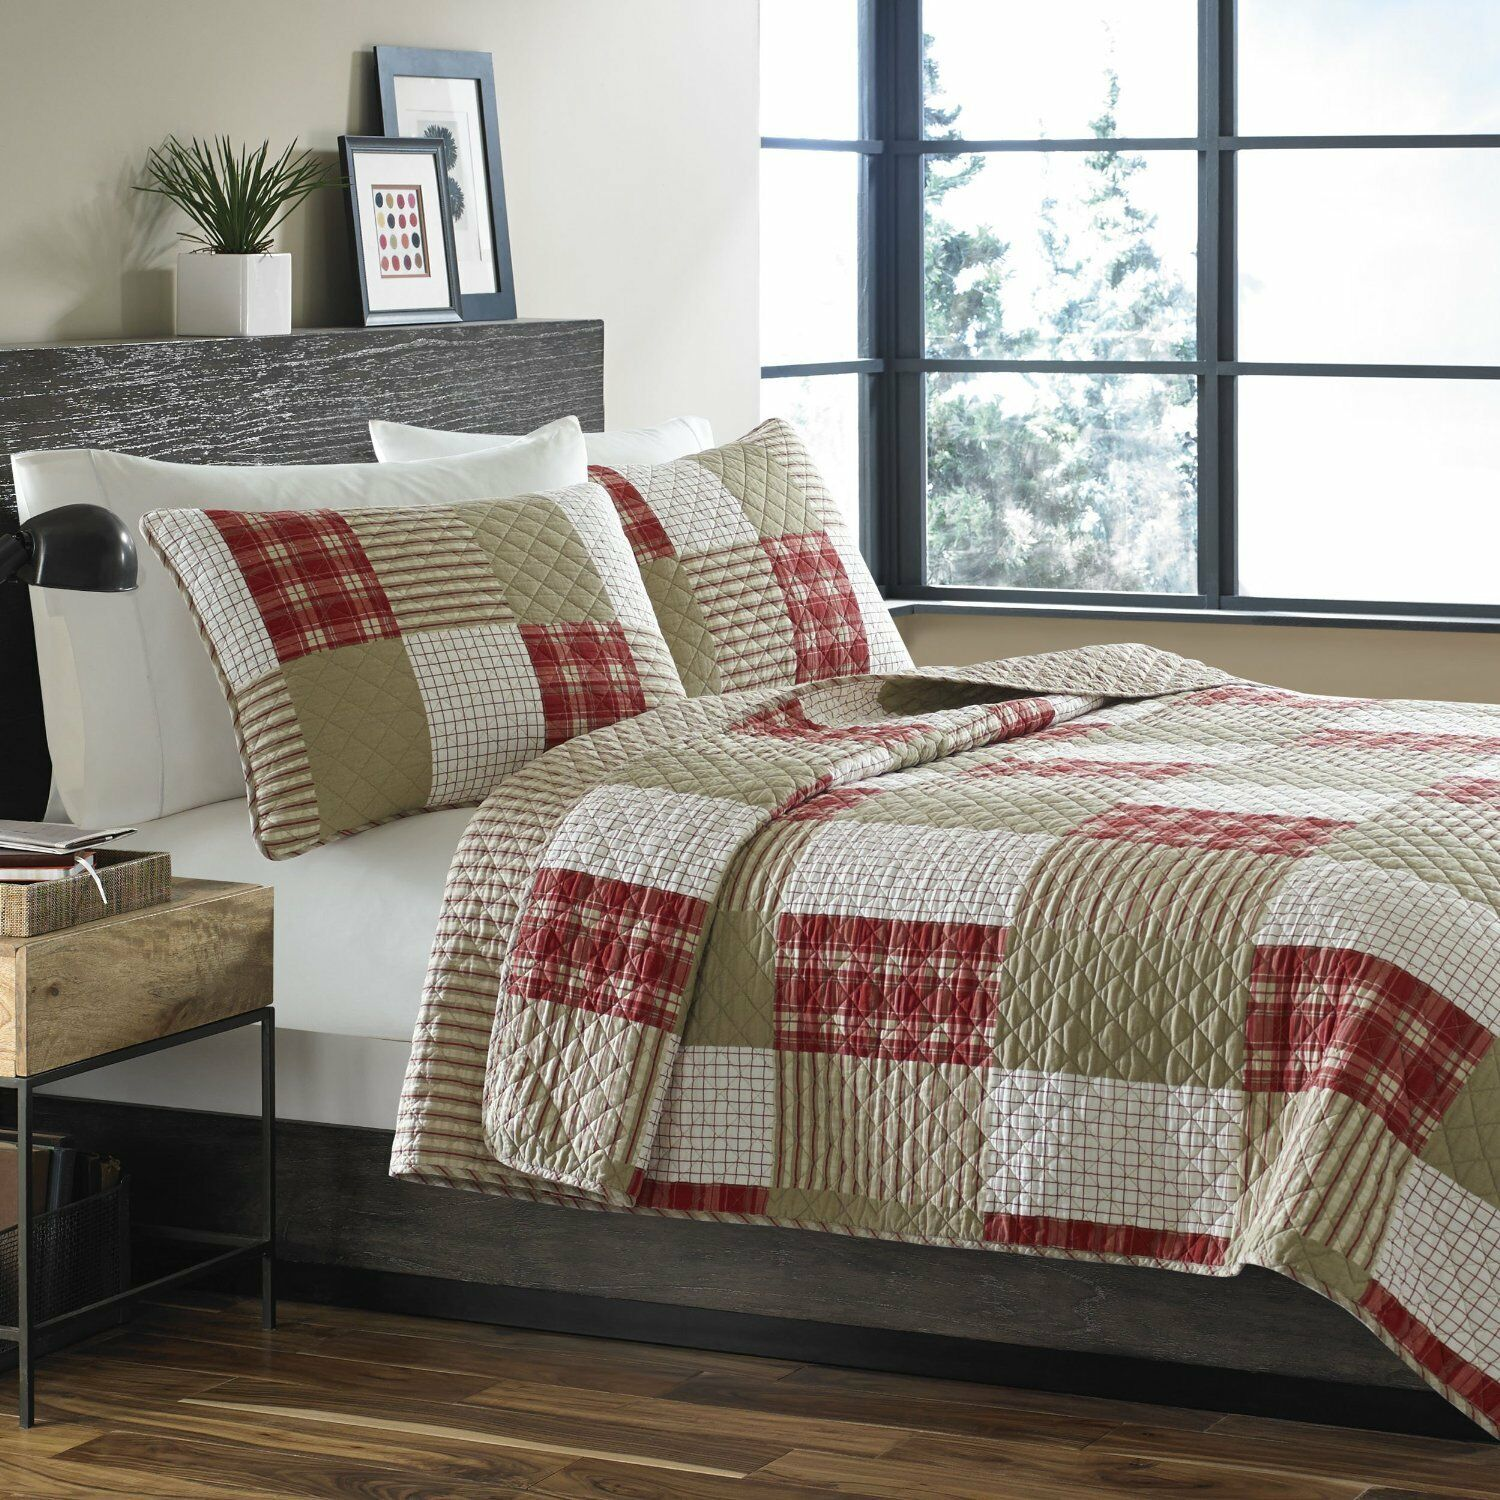 Red Cream Patch Work Twin Quilt 2pc Reversible Blanket Mattress Cover Bed Spread